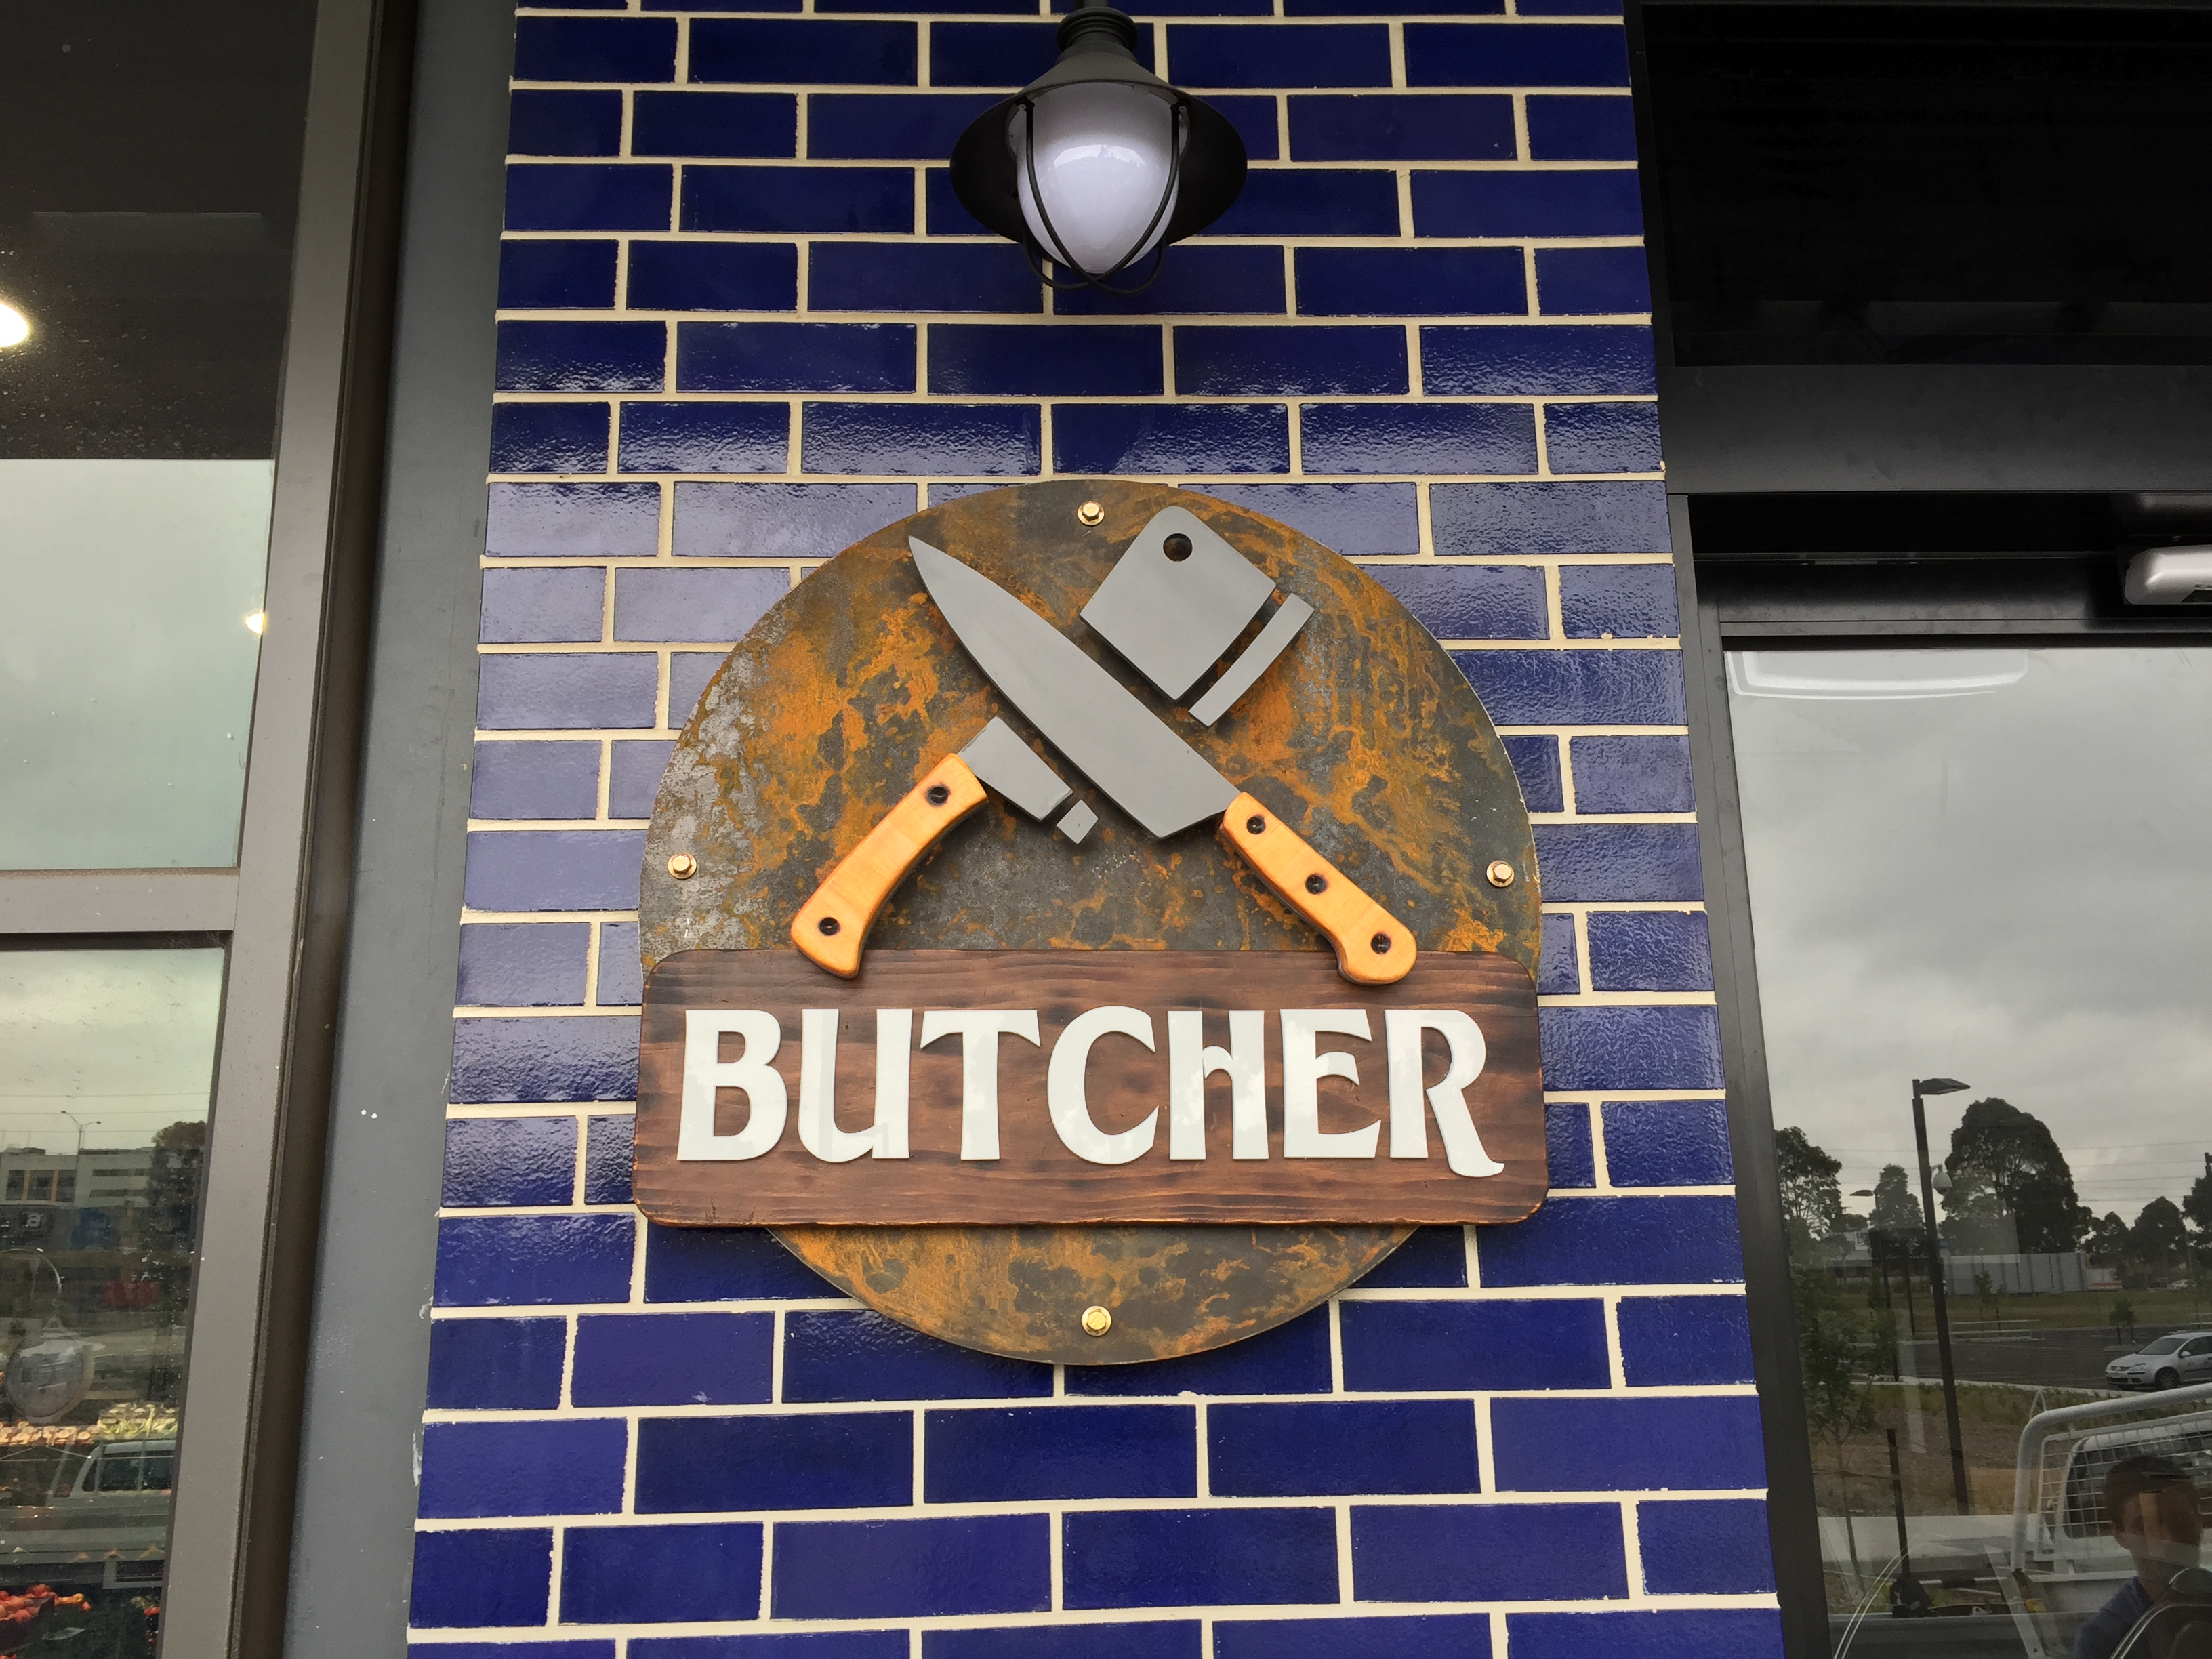 Butcher signage came out great, a lot of work went into this piece